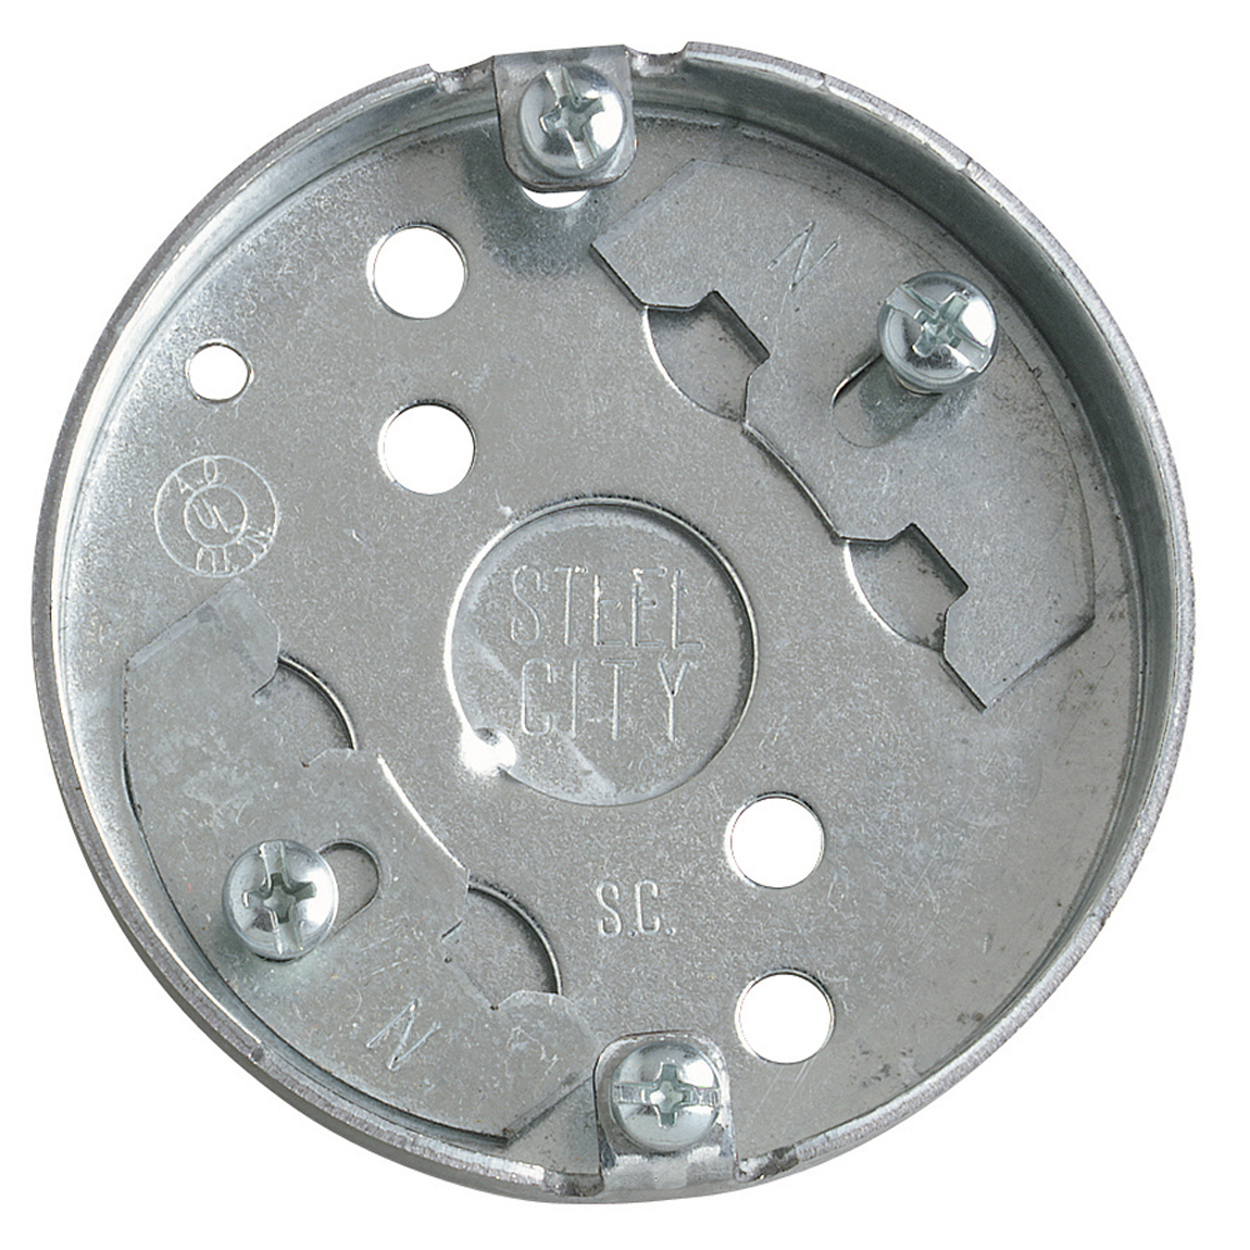 Steel City® Ceiling Box, 1 Outlet, 1/2 in Knockout, Knockout Cable Entry, 3-1/4 in Diameter, Round Shape, Surface Mounting, 4 cu-in Capacity, Steel, Pre-Galvanized, Silver, 1/2 in D Dimensions